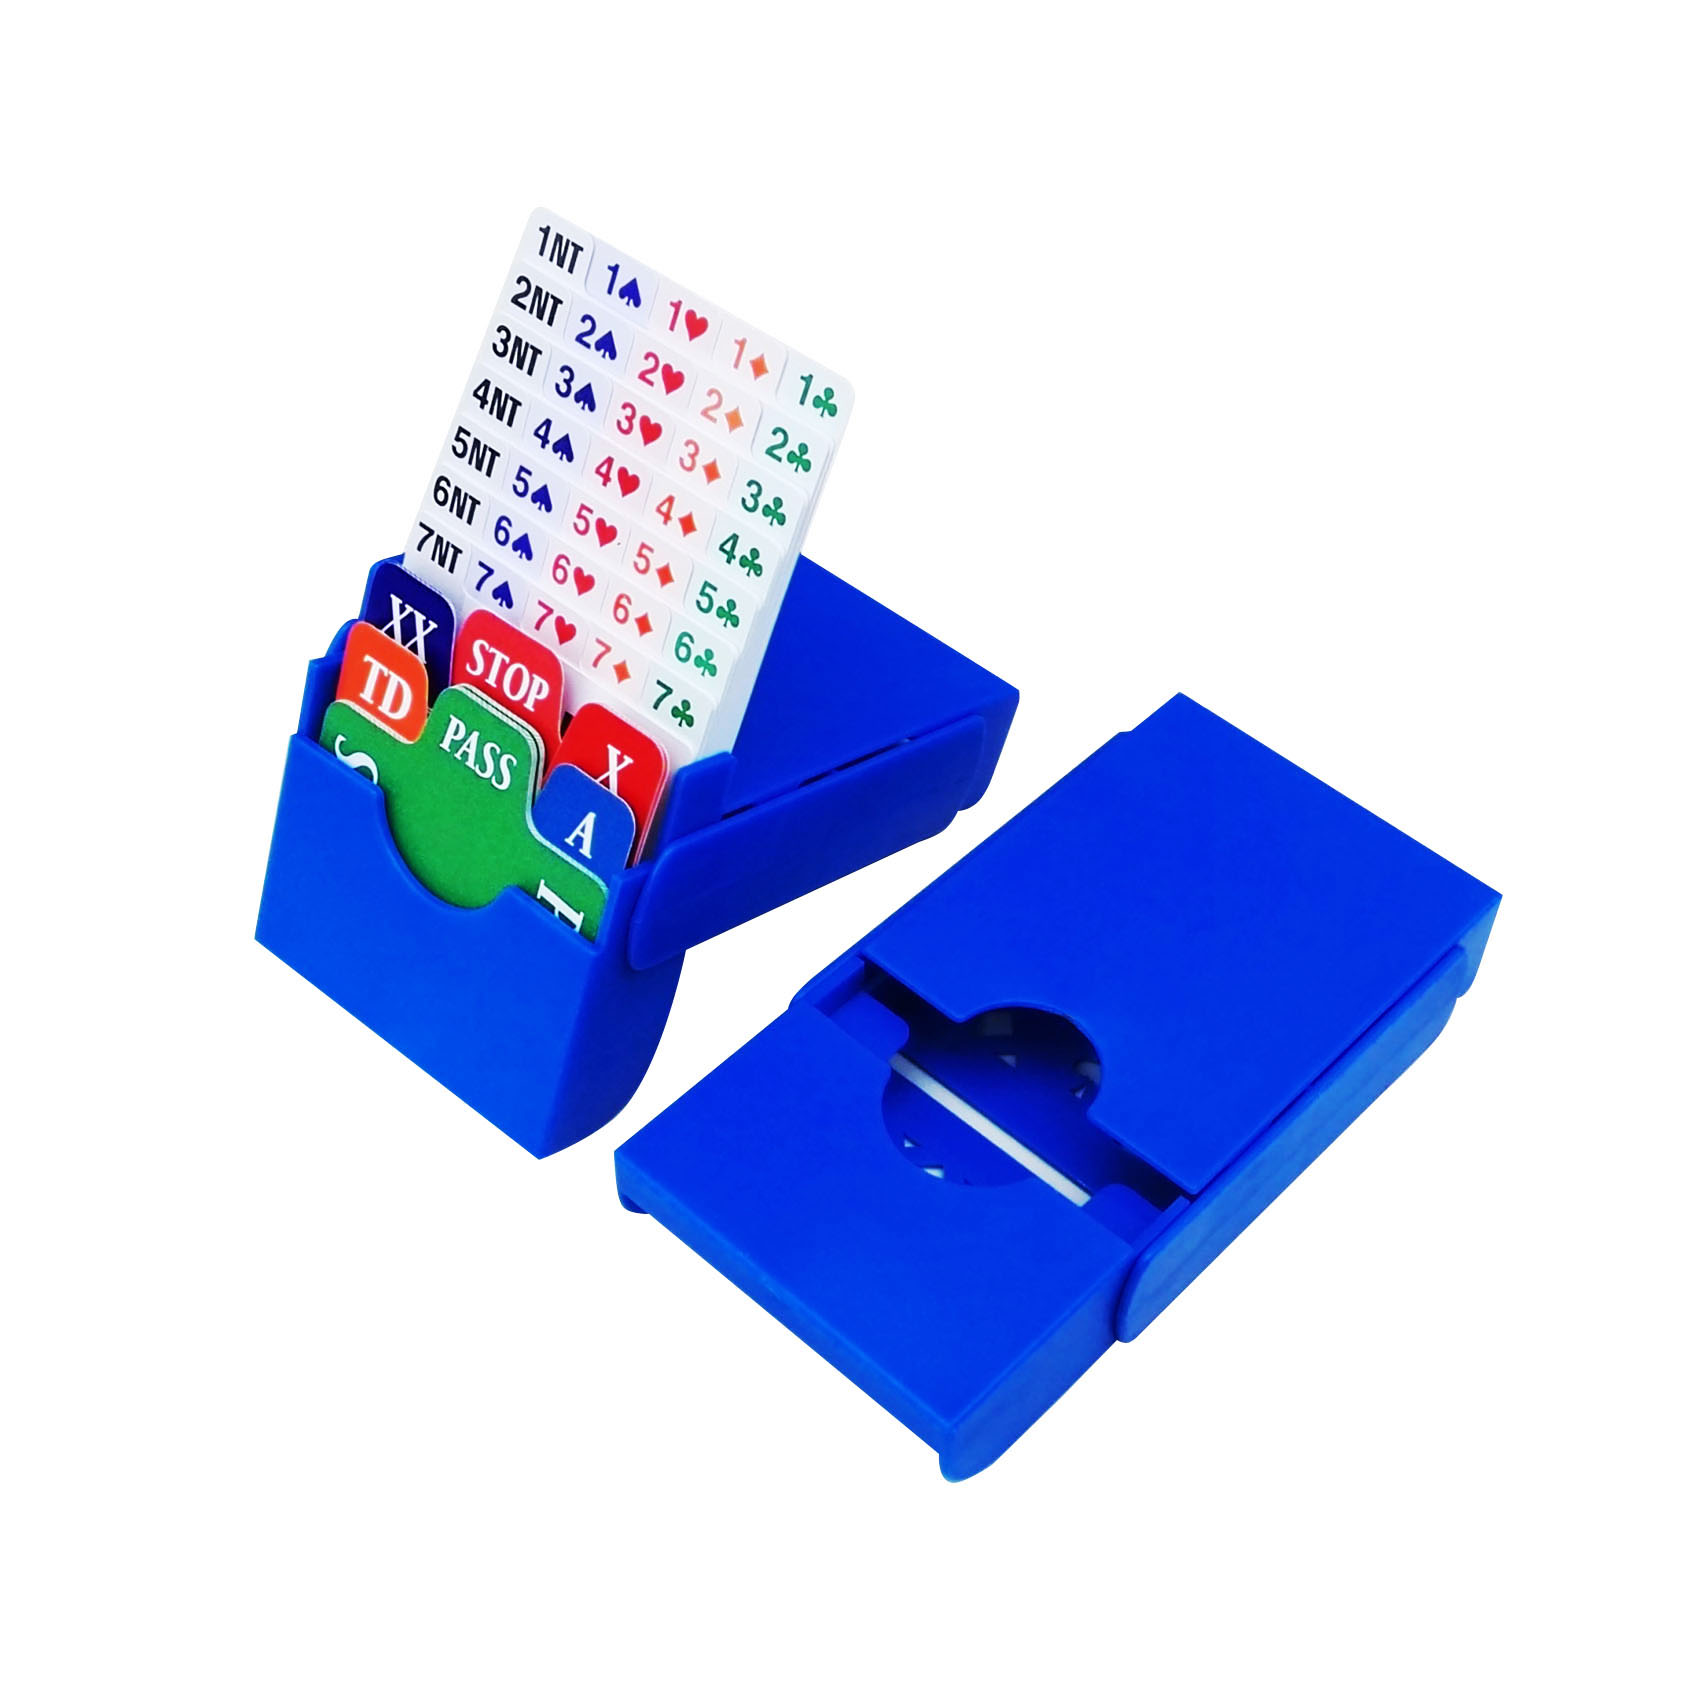 STBB001 Bidding Box(bidding box only),easy to open and fold